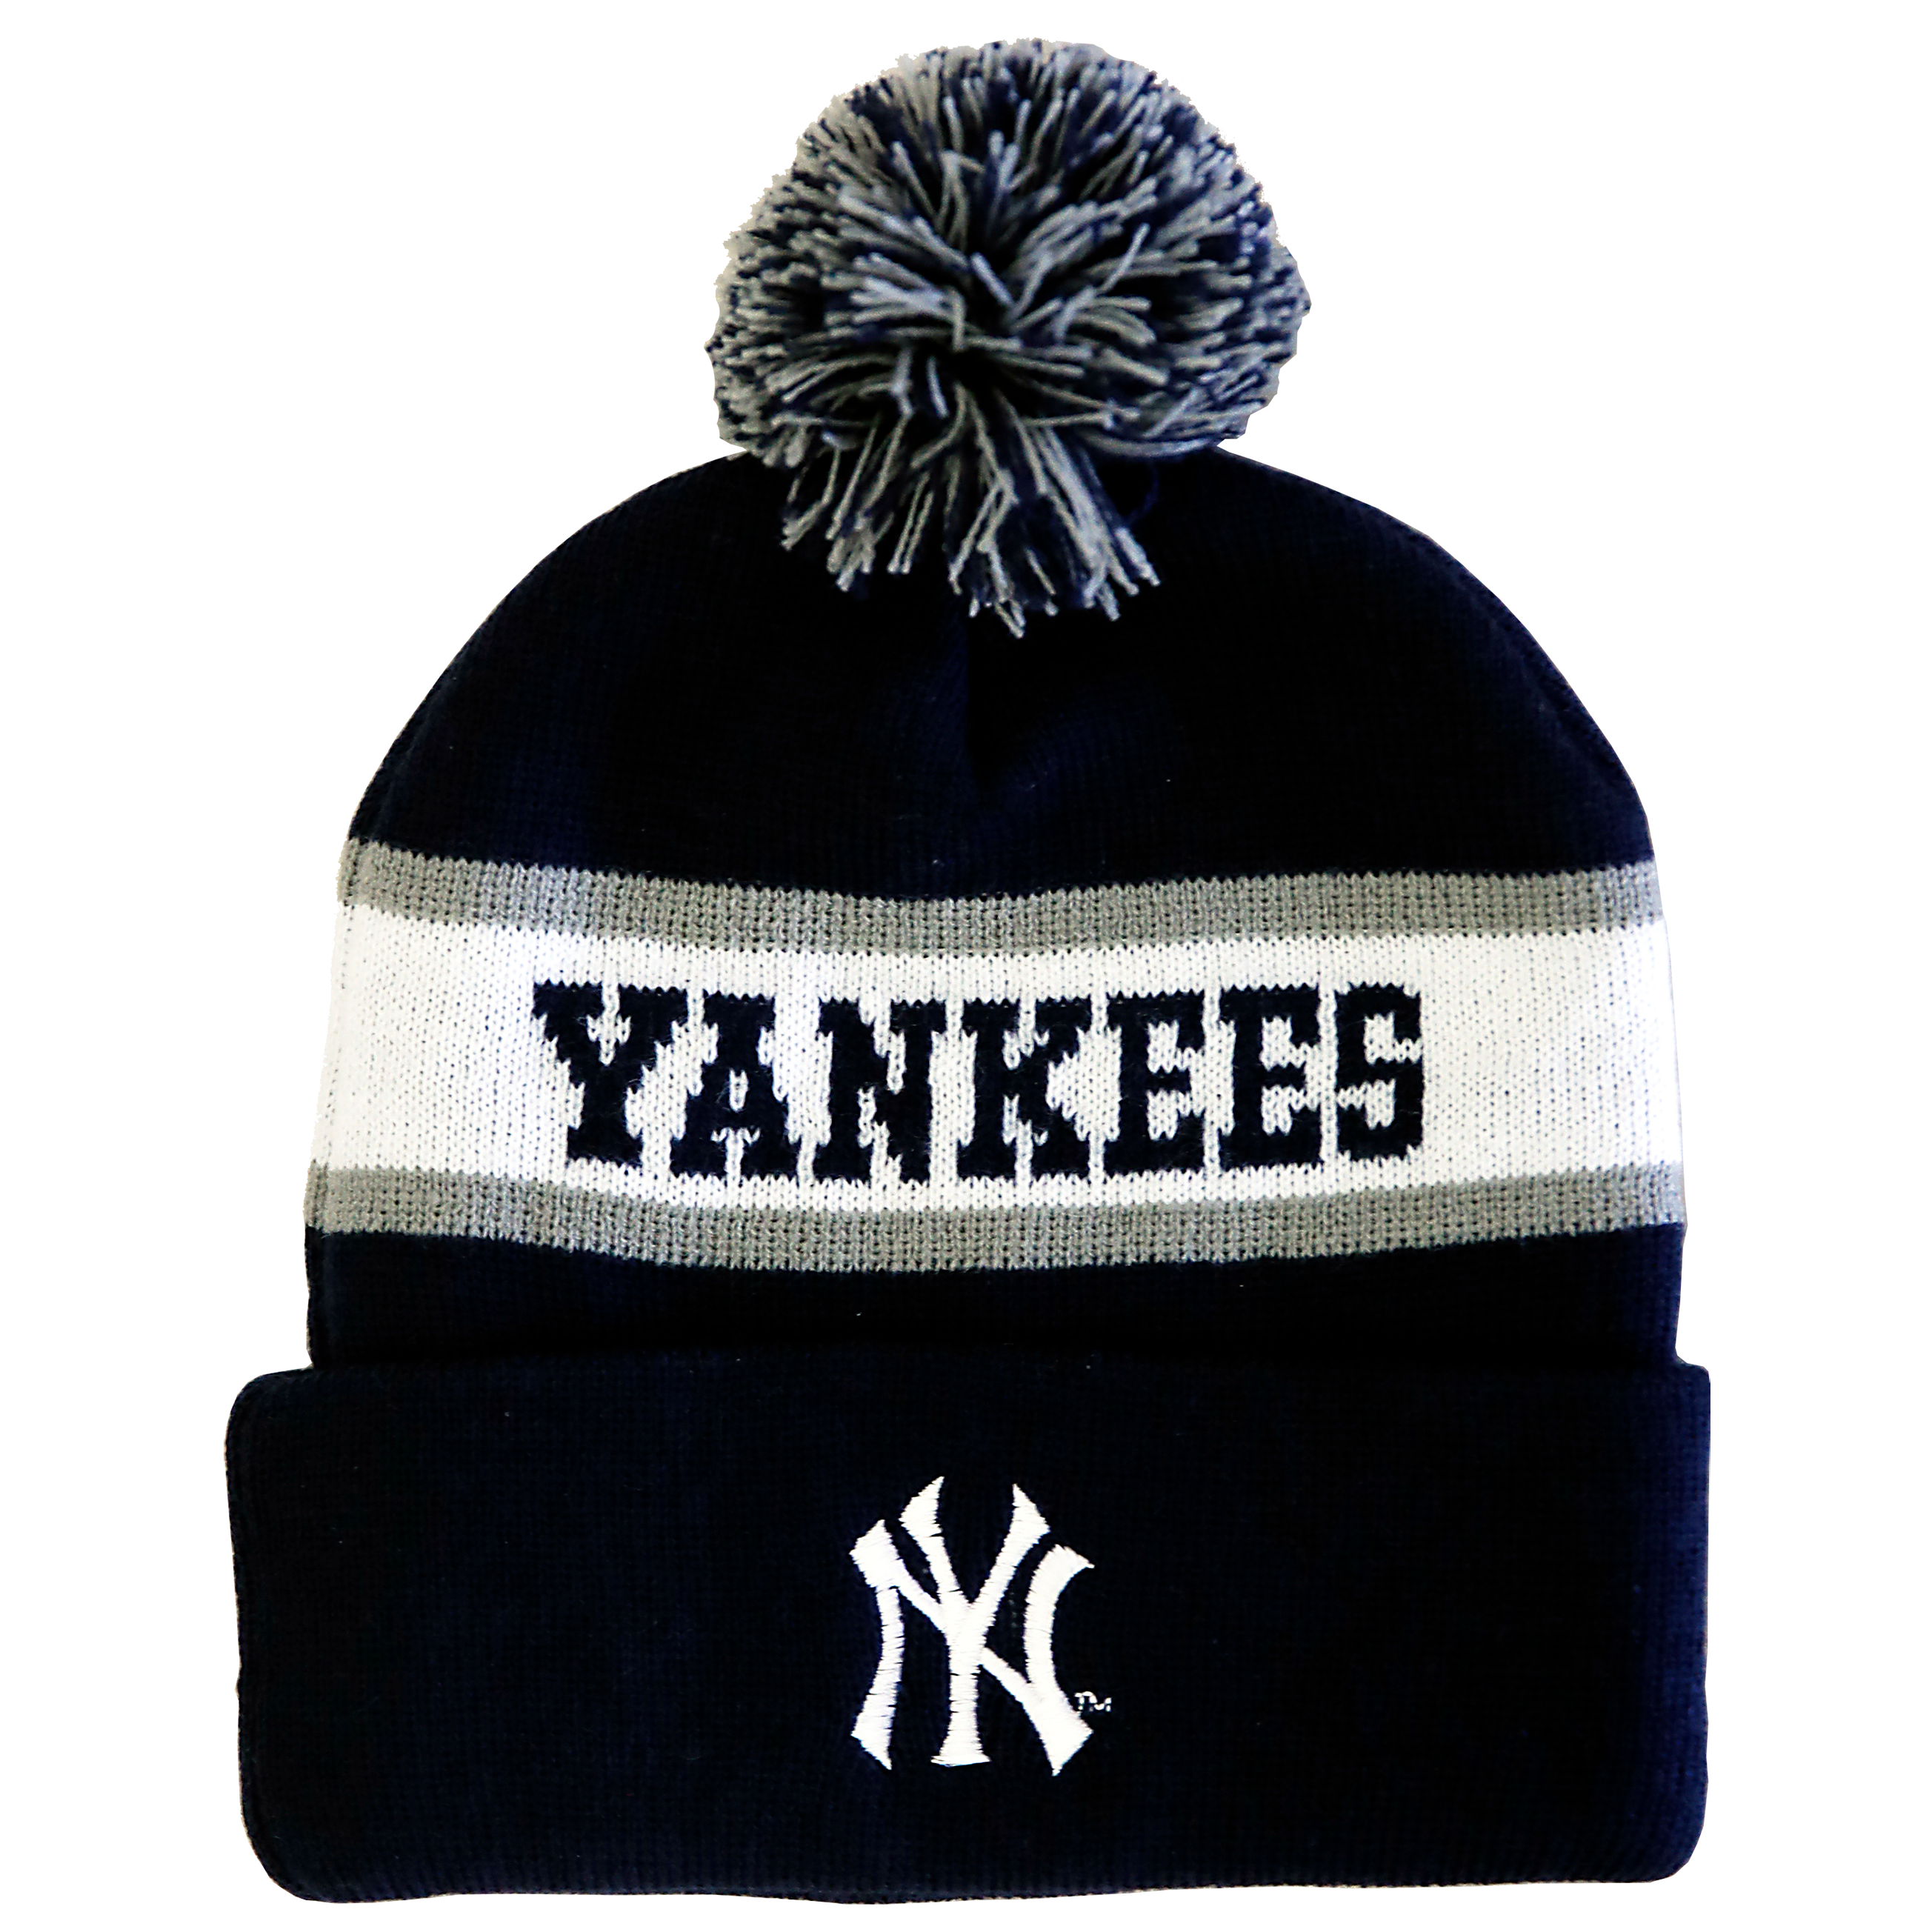 Yankees Promotional Schedule 2020 Yankees Promotional Tickets | New York Yankees